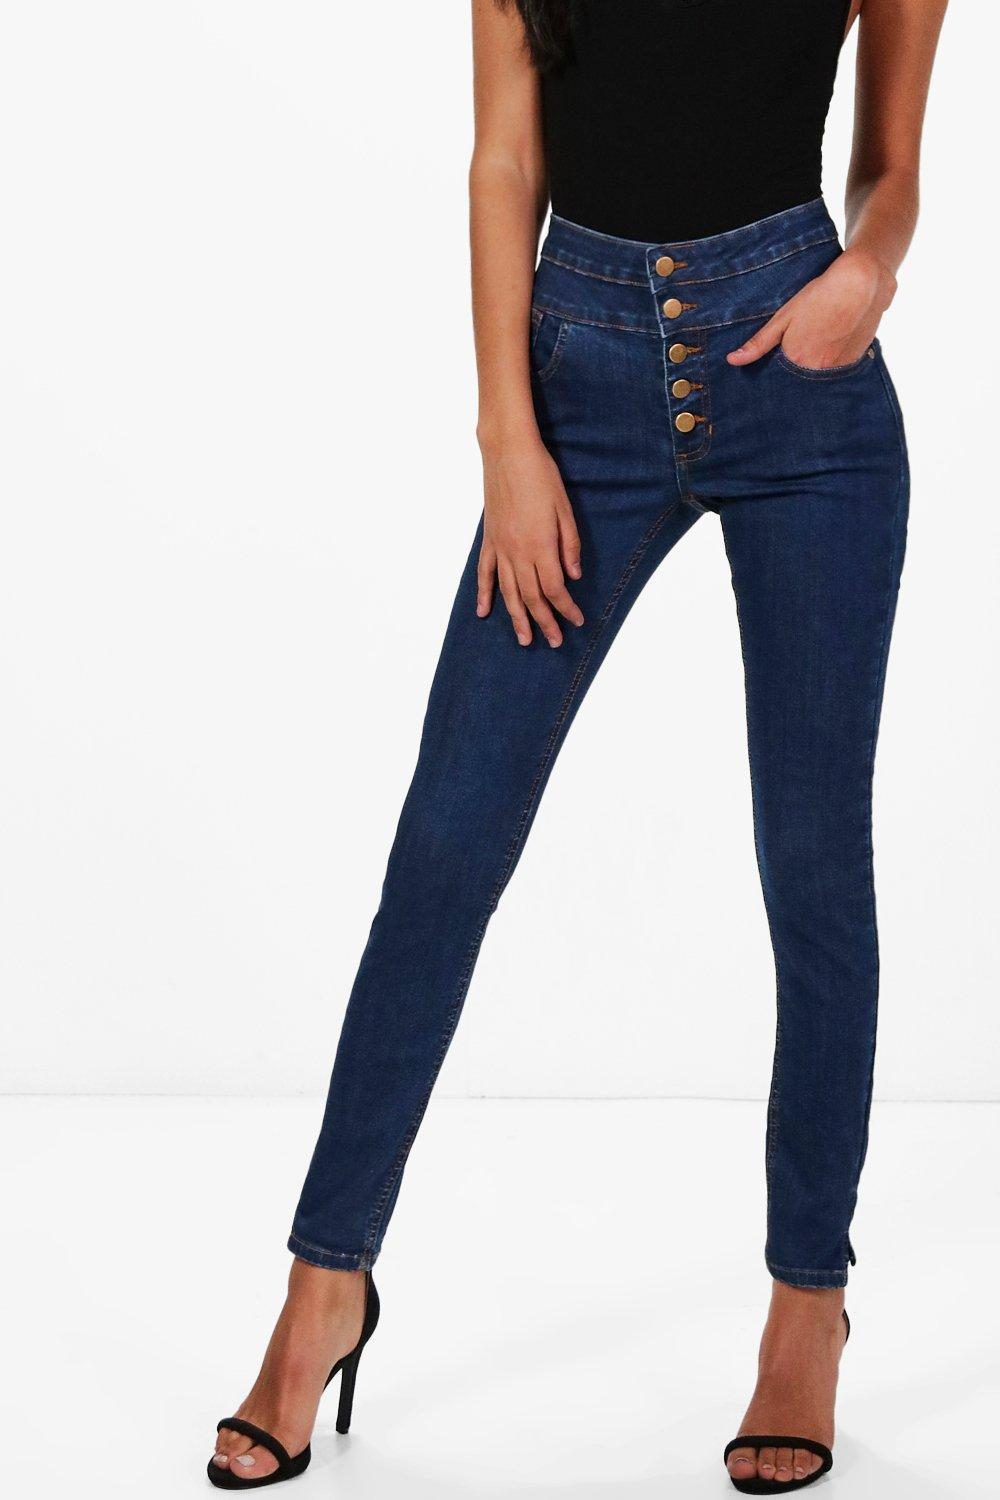 Boohoo ruby 5 pocket skinny jeans